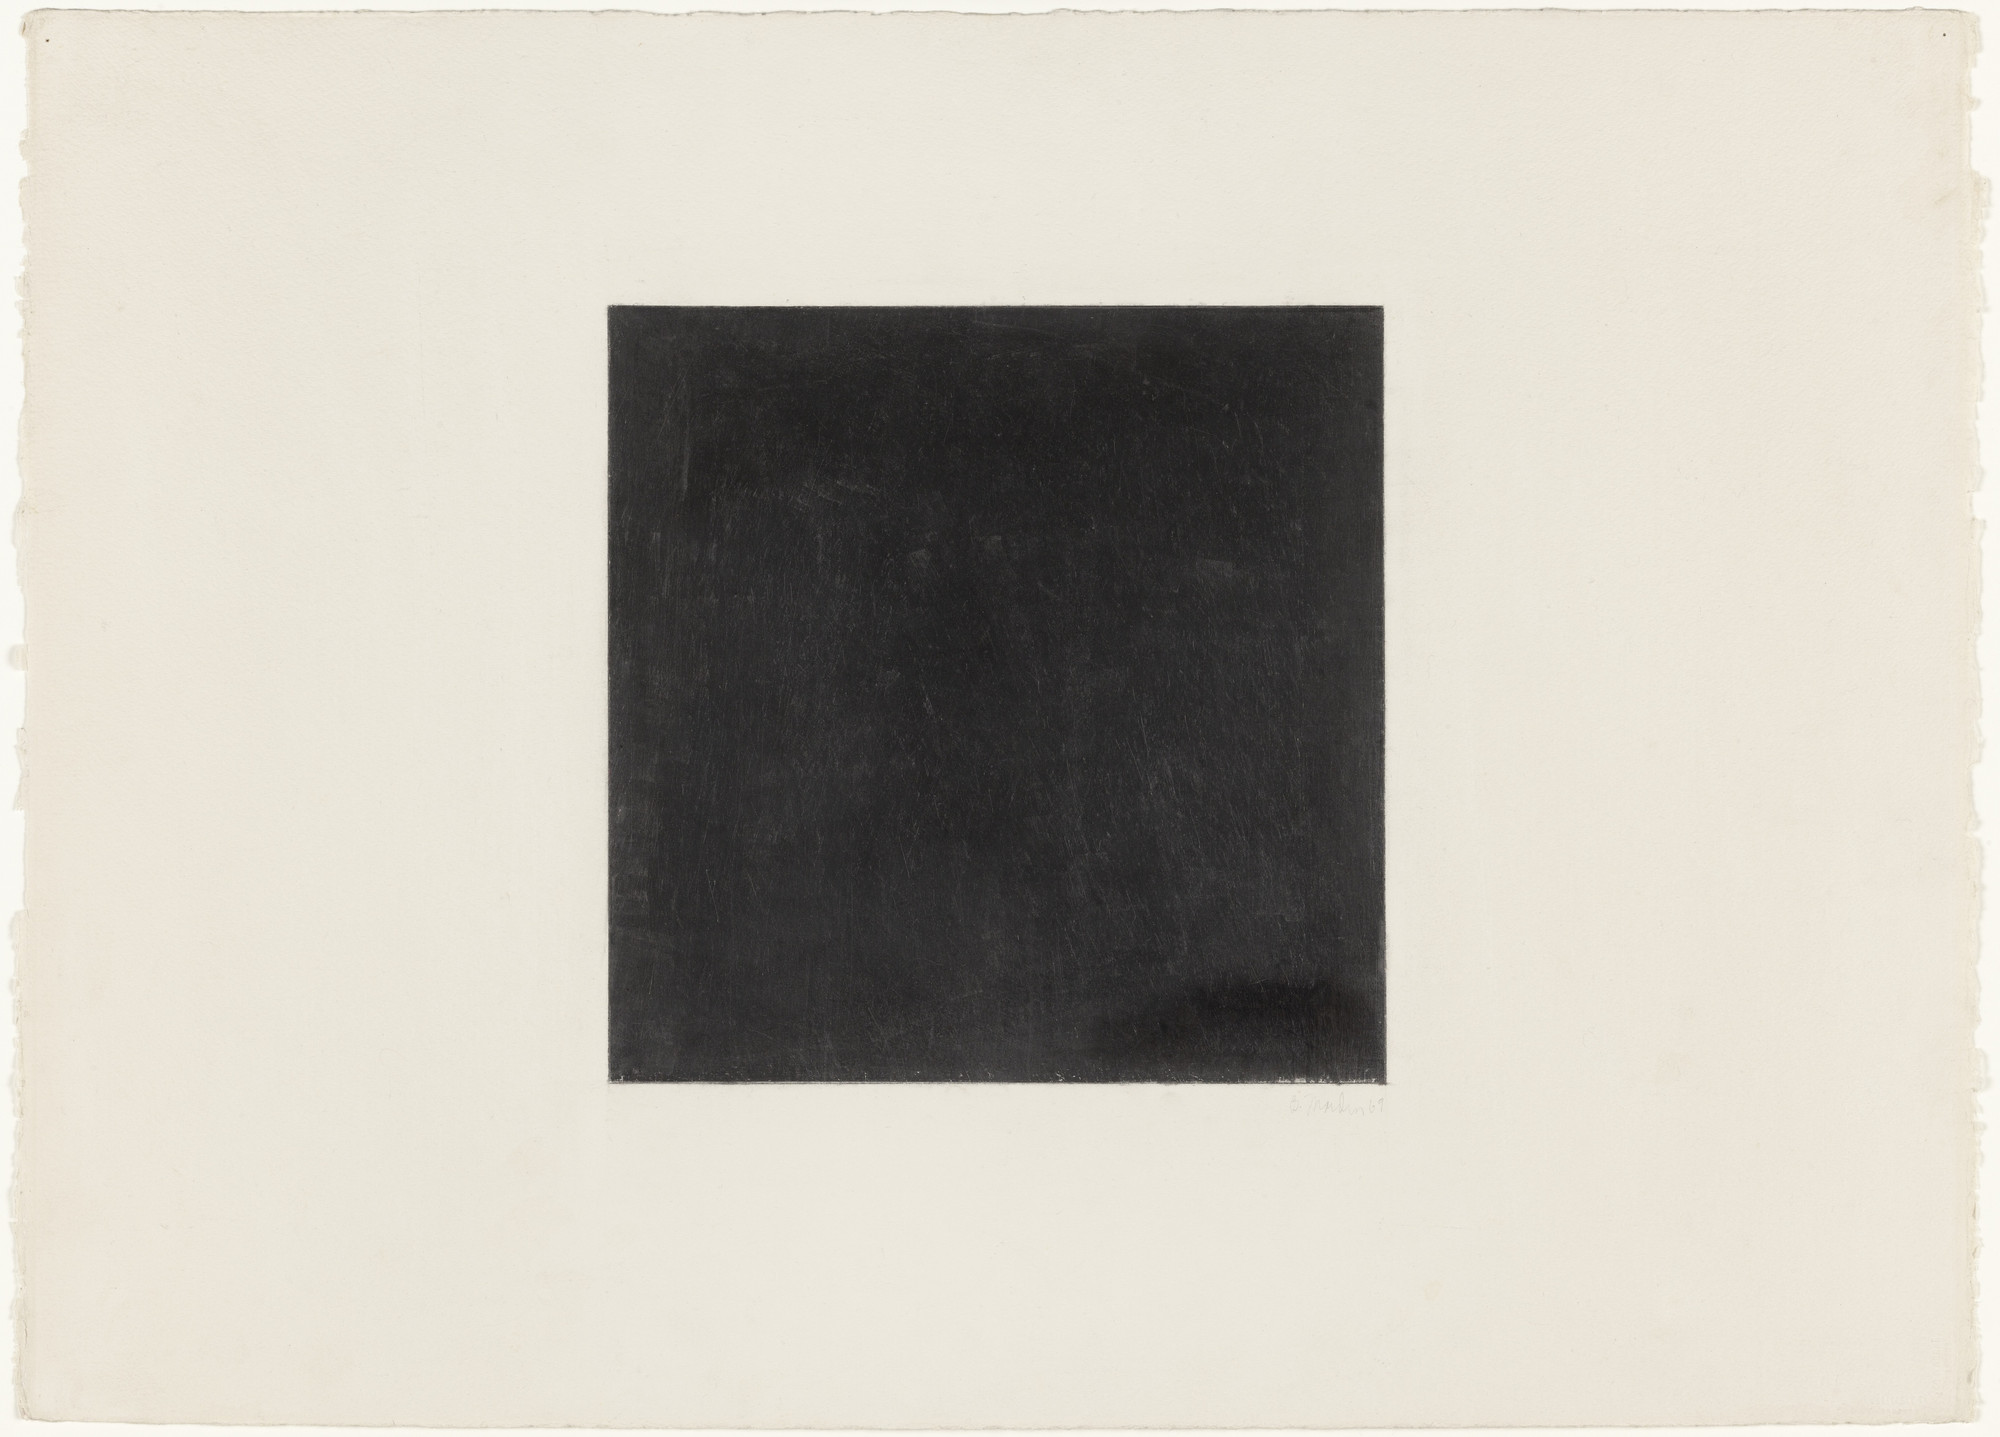 Brice Marden. Untitled. 1969